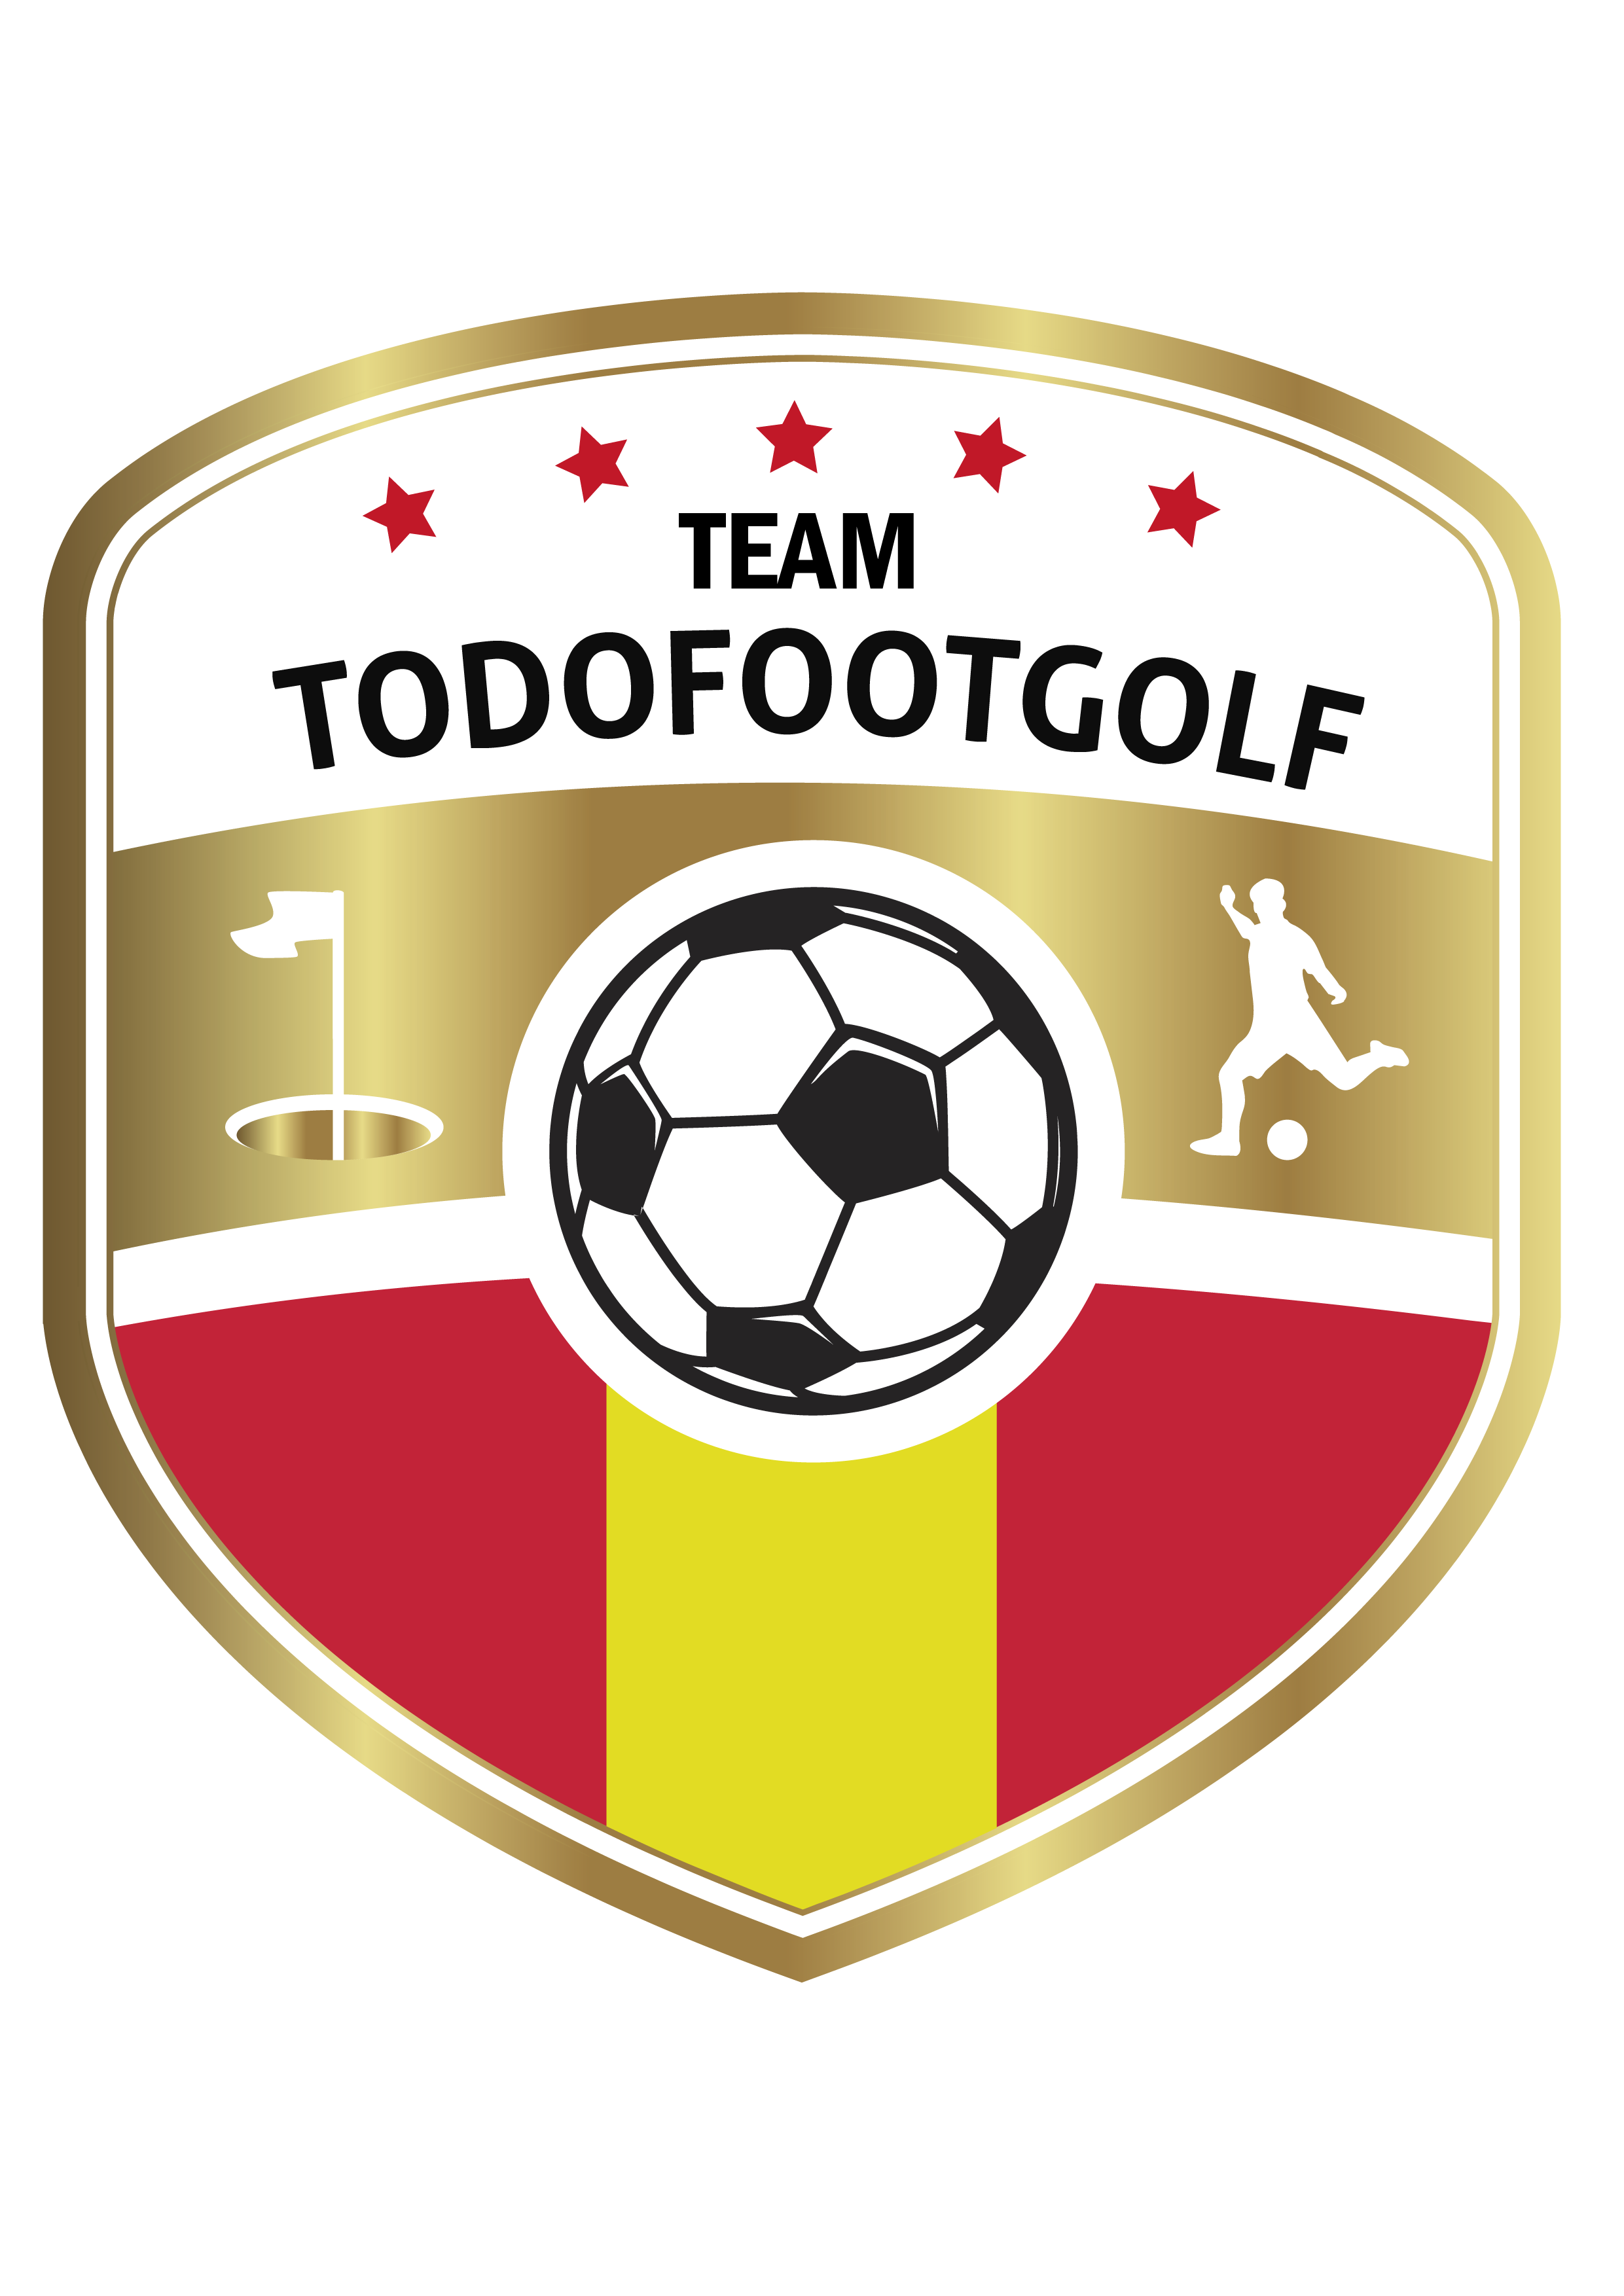 todofootgolf